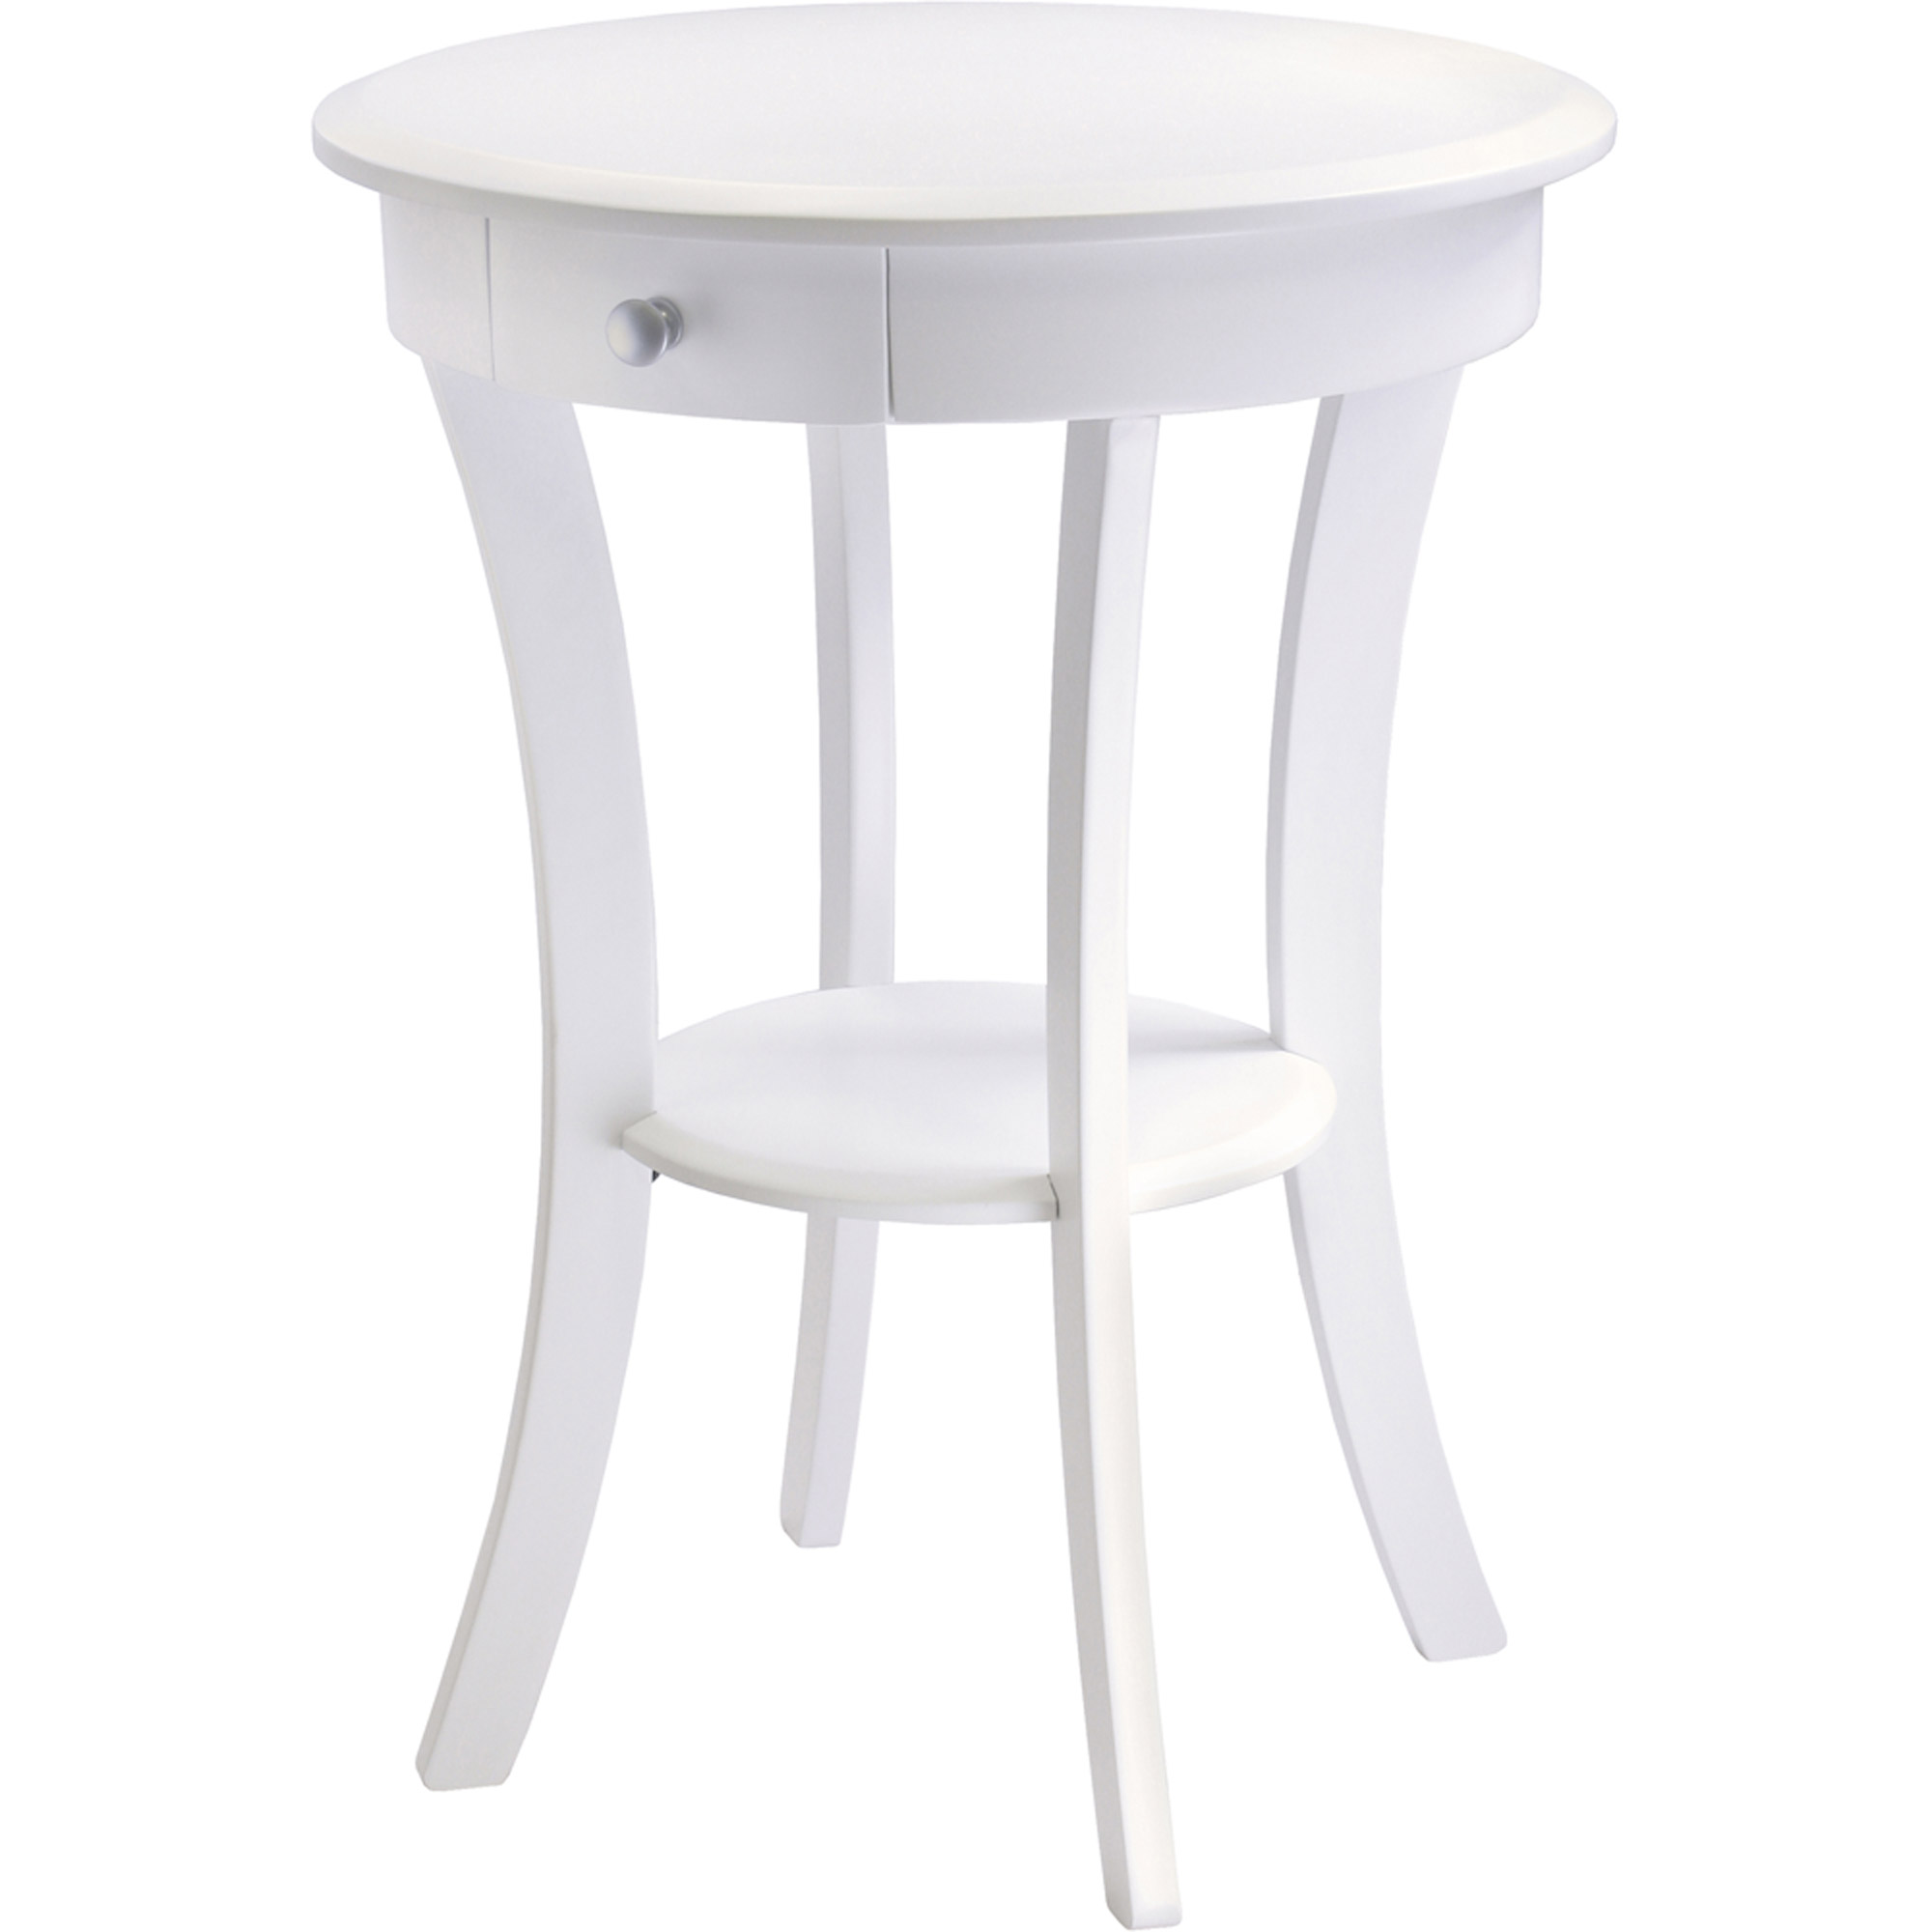 sasha round accent table white wood black coffee glass vintage wicker side acrylic drum end ikea wall mounted shelves top pottery barn entry bench unique cabinet hardware market